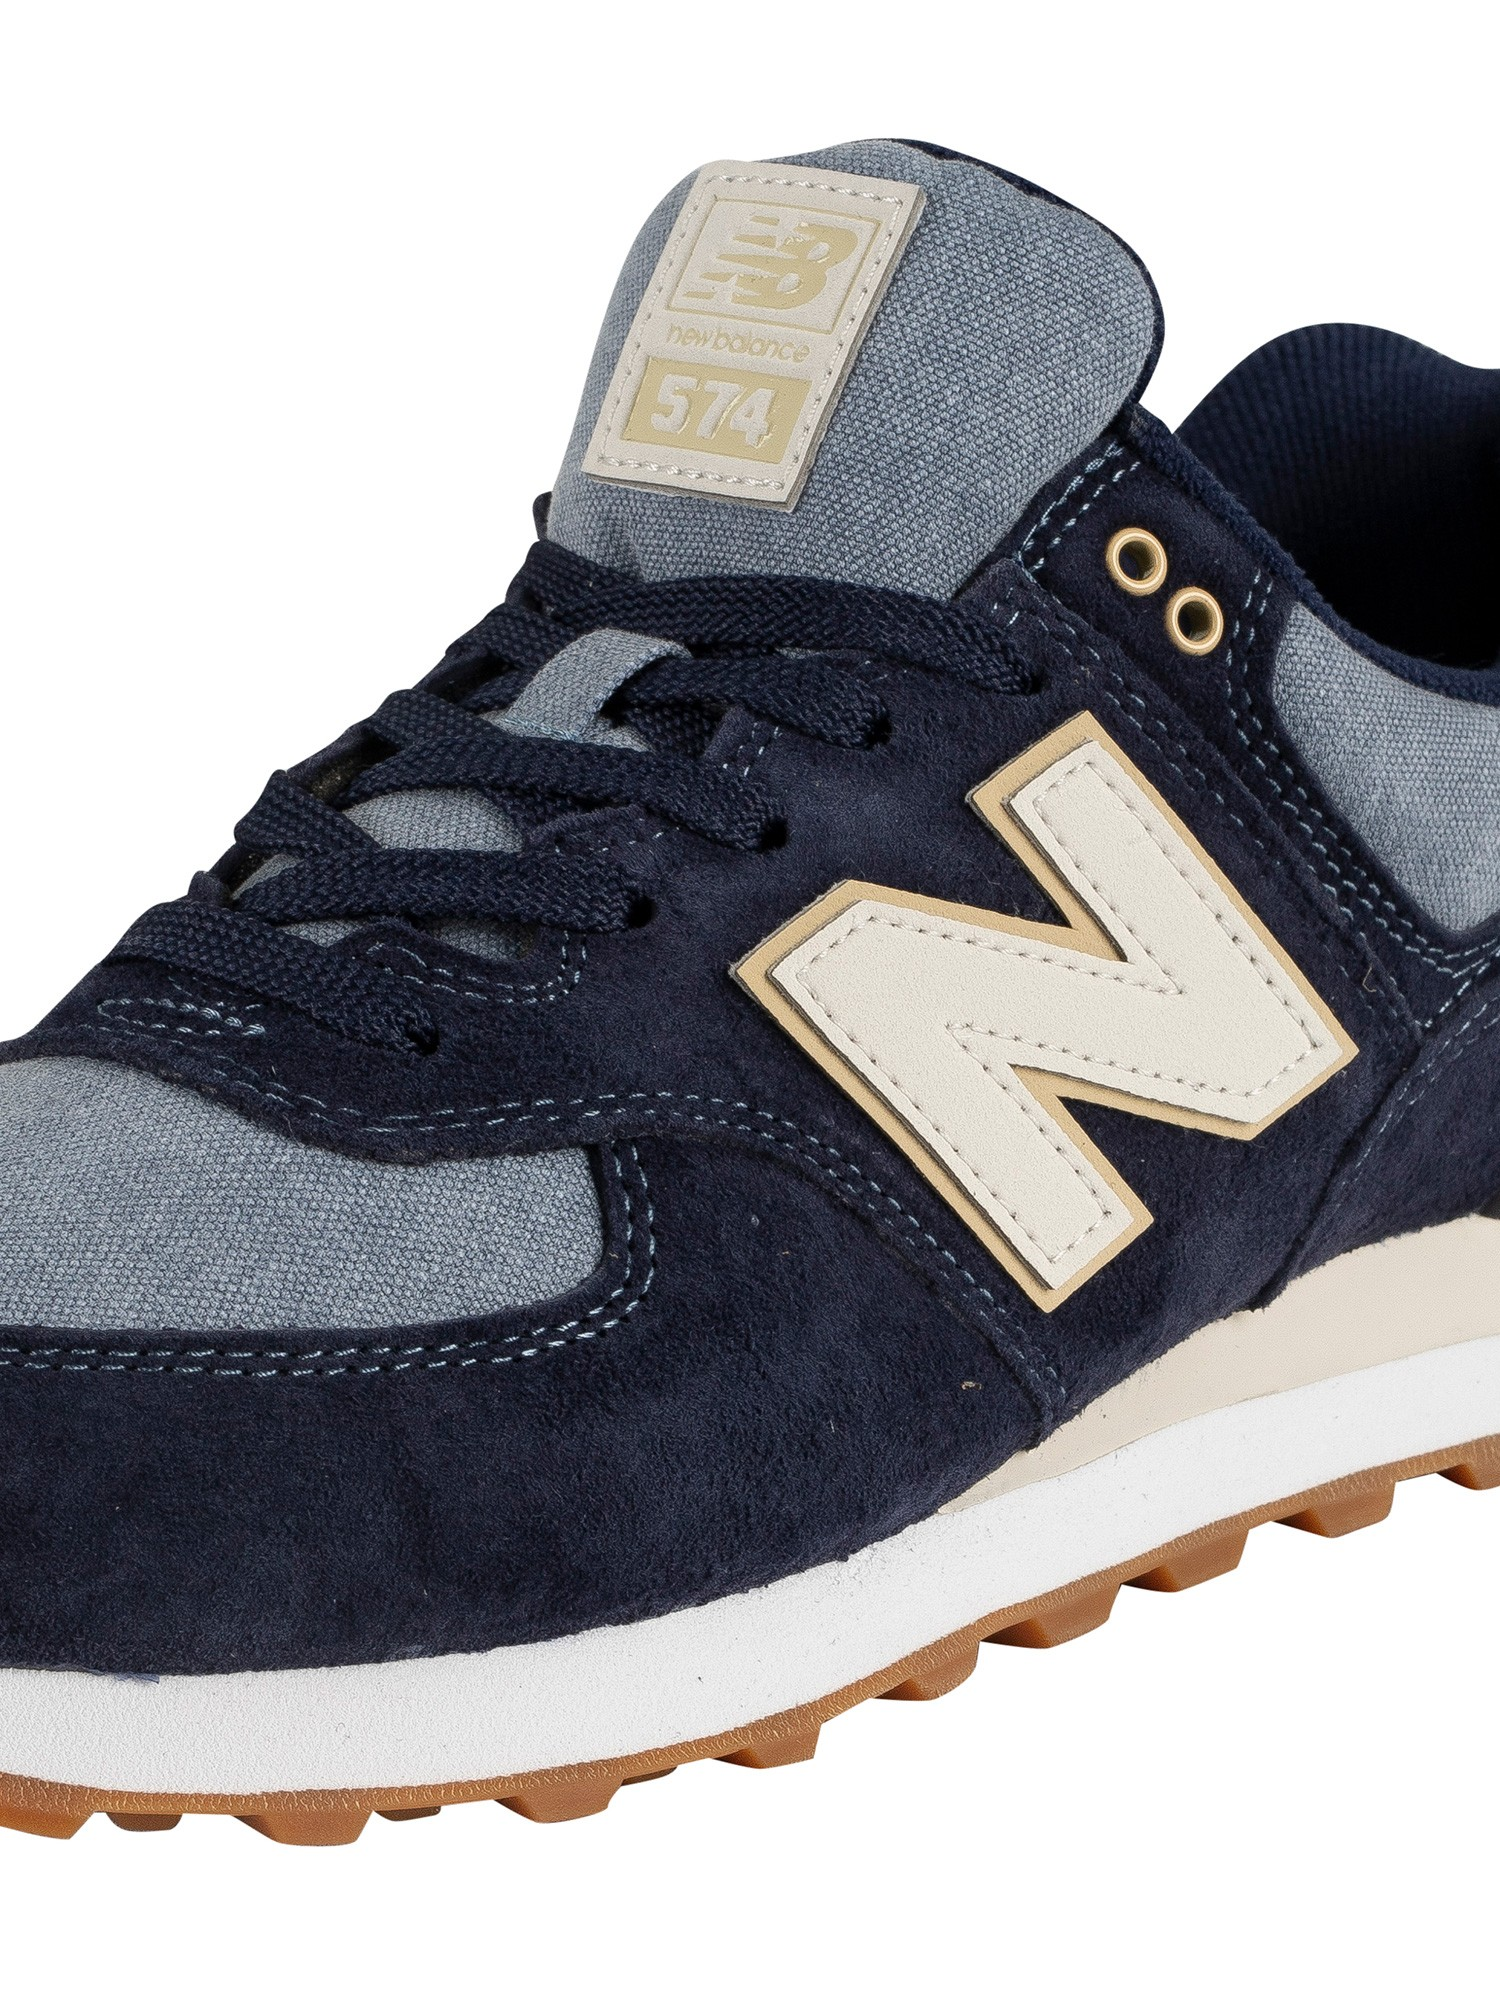 new concept fedc7 af387 New Balance 574 Suede Trainers - Navy